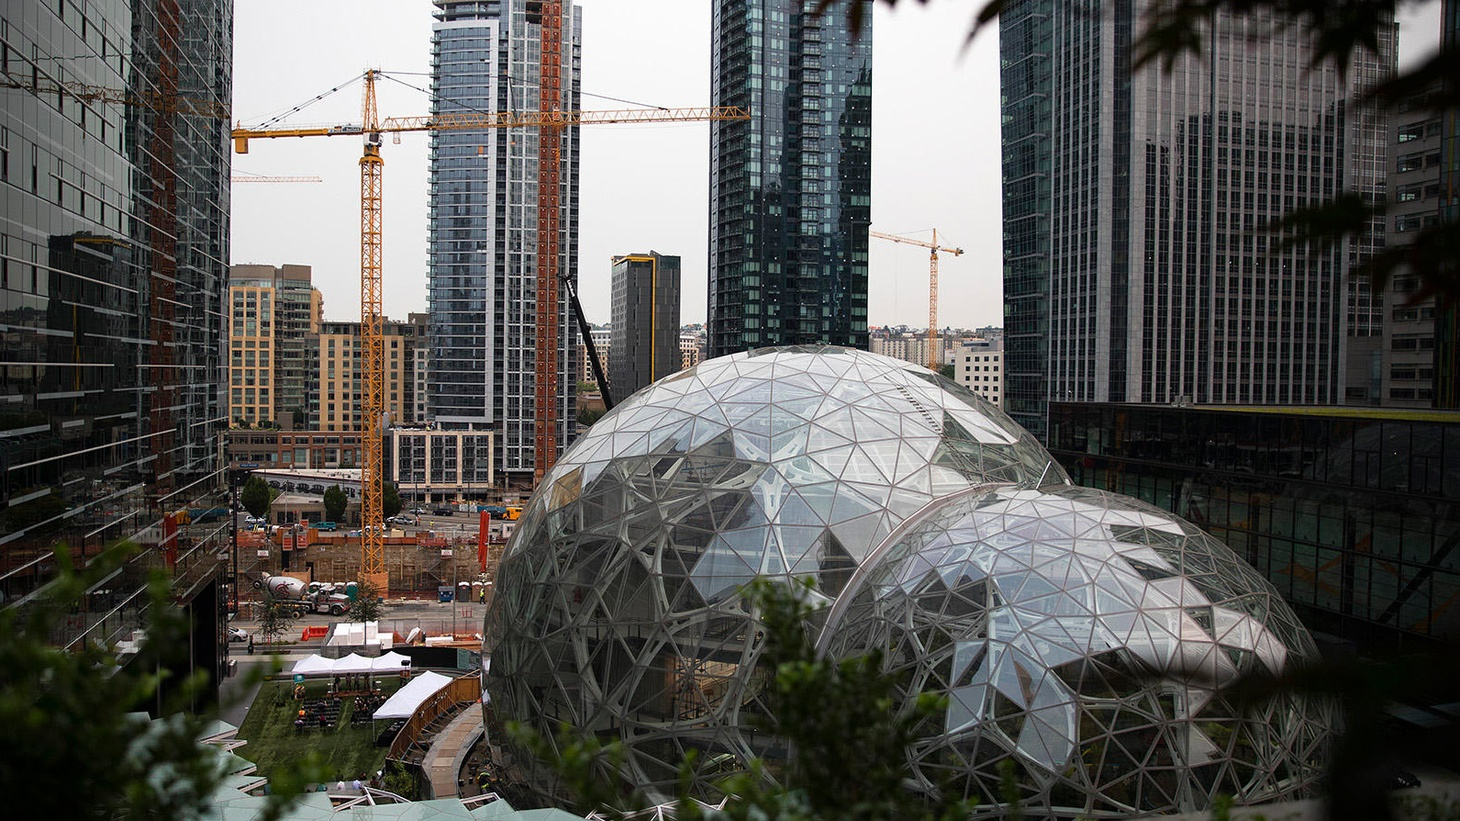 Thursday is the deadline for cities near and far to submit bids to internet superstore Amazon for its second global headquarters. Amazon says its new HQ2 will be an economic engine for any city, generating around 50,000 jobs. That has cities in Southern California, including Los Angeles, San Diego, Irvine and Santa Ana licking their chops and offering up incentives in an effort to score the headquarters.